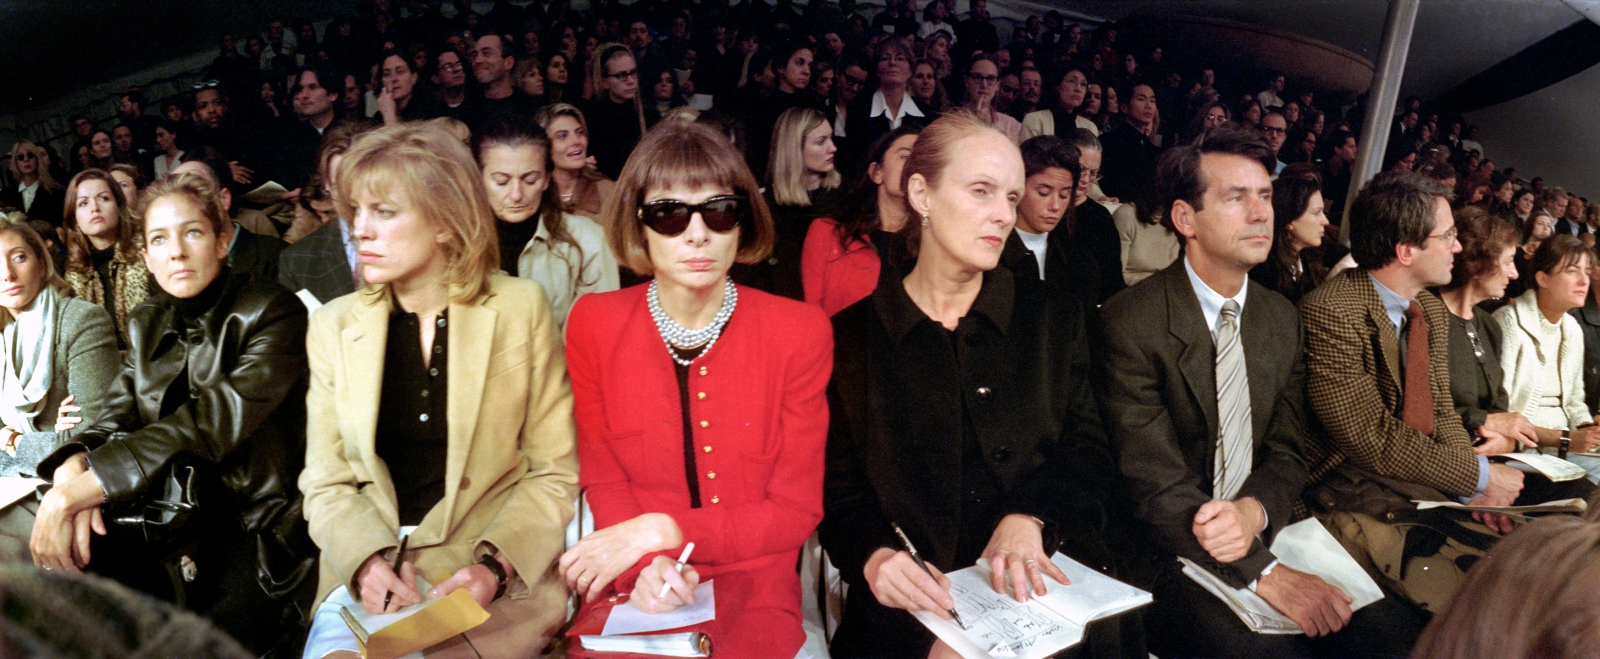 The Front Row: Photographer (and ex-Mrs. Calvin Klein) Kelly Klein (in black); Katherine Betts, Anna Wintour; and Grace Coddington of Vogue'; and Patrick McCarthy of Fairchild Publications. The line-up in the front row is an indication of who wields the power in the fashion industry, The seats are painstakingly assigned by the show's publicist. Fall '95.